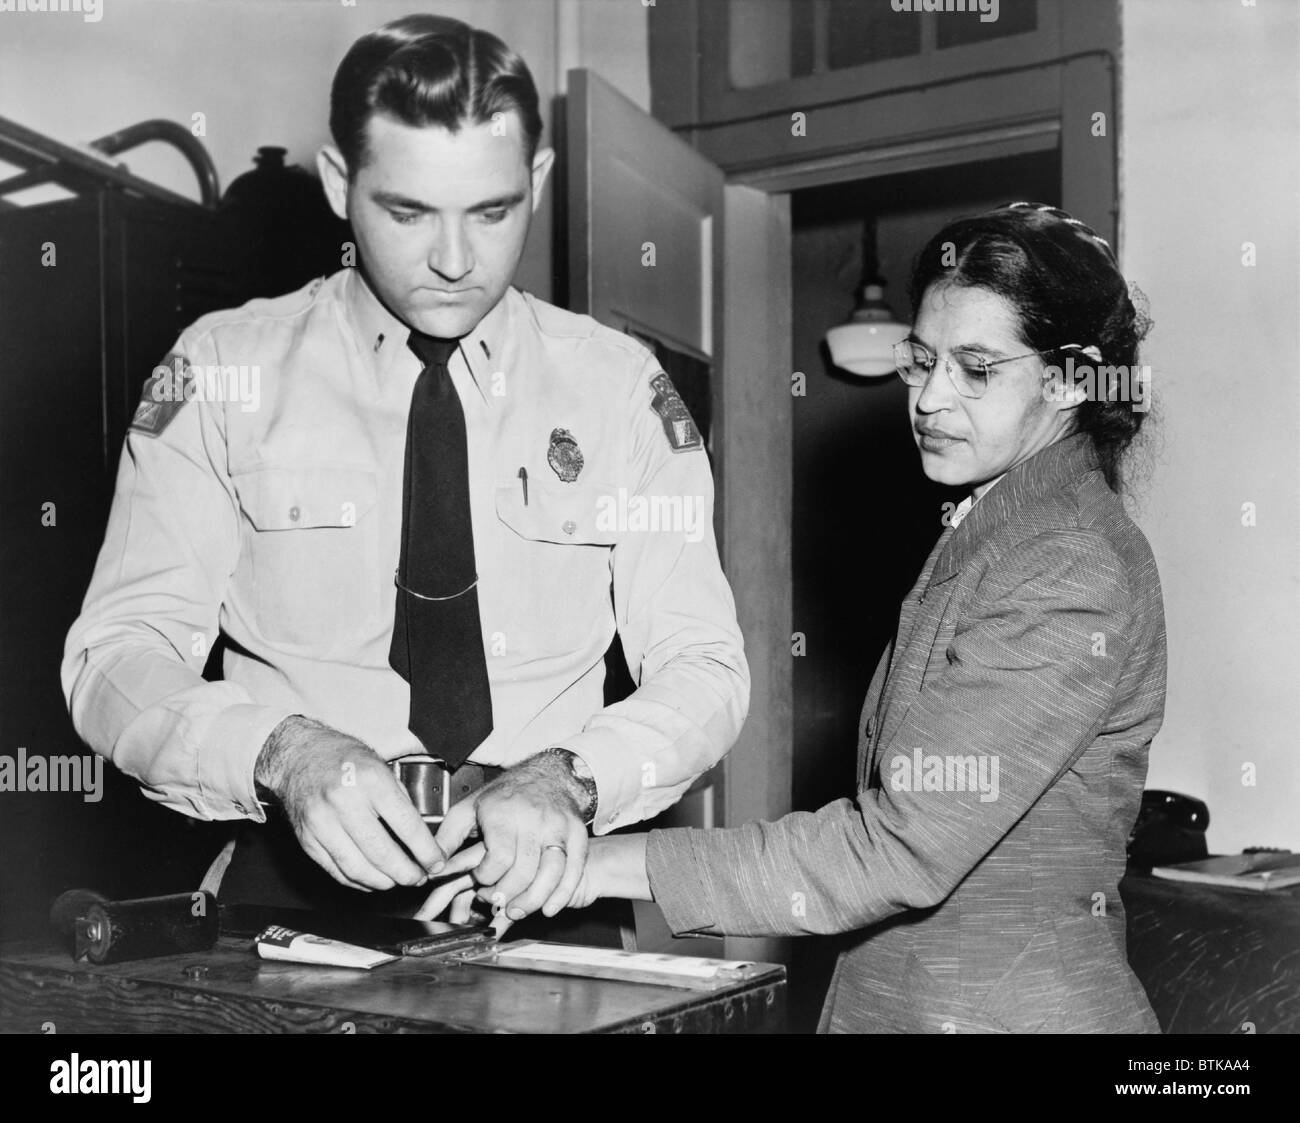 Rosa Parks (1913-2005), whose refusal to move to the back of a bus touched off the bus boycott in Montgomery, Alabama. - Stock Image